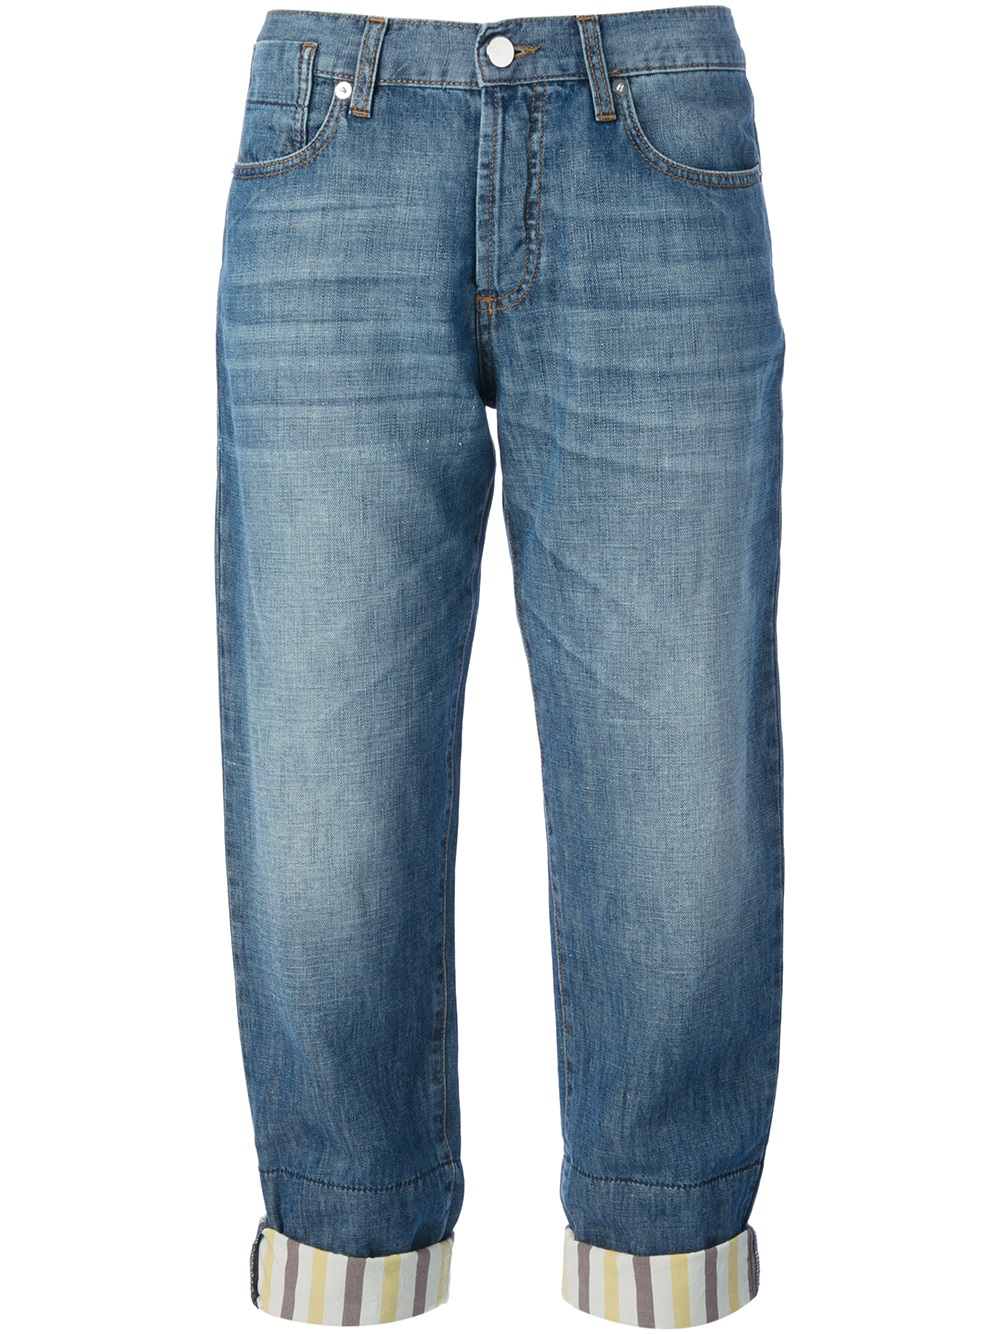 Boyfriend Jeans - Blue Marni Discount Get To Buy Buy Cheap With Mastercard 9LPjq1